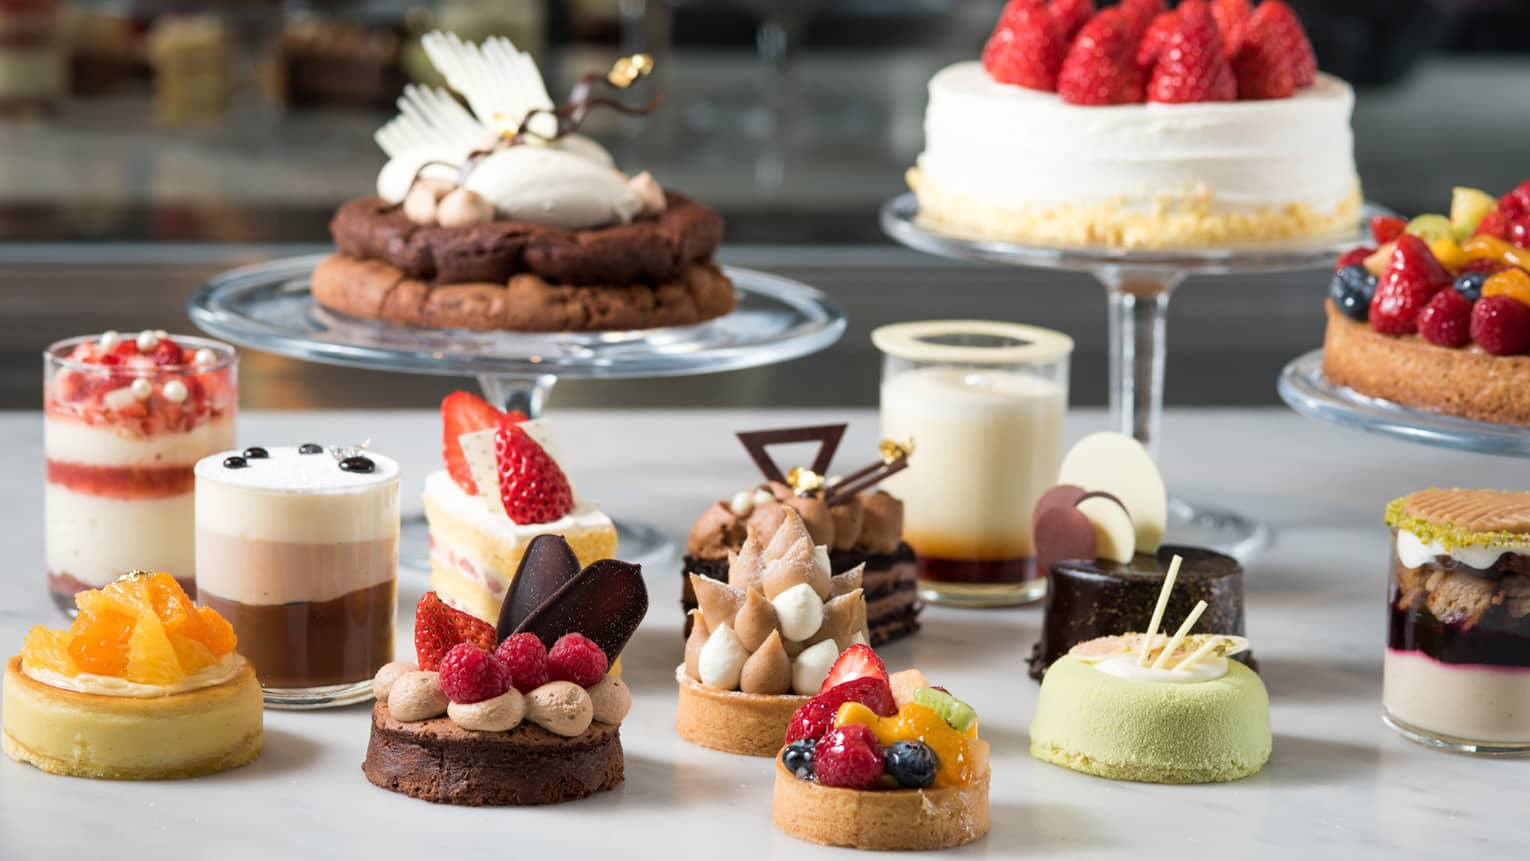 Small handmade pastries, cakes and desserts on white counter